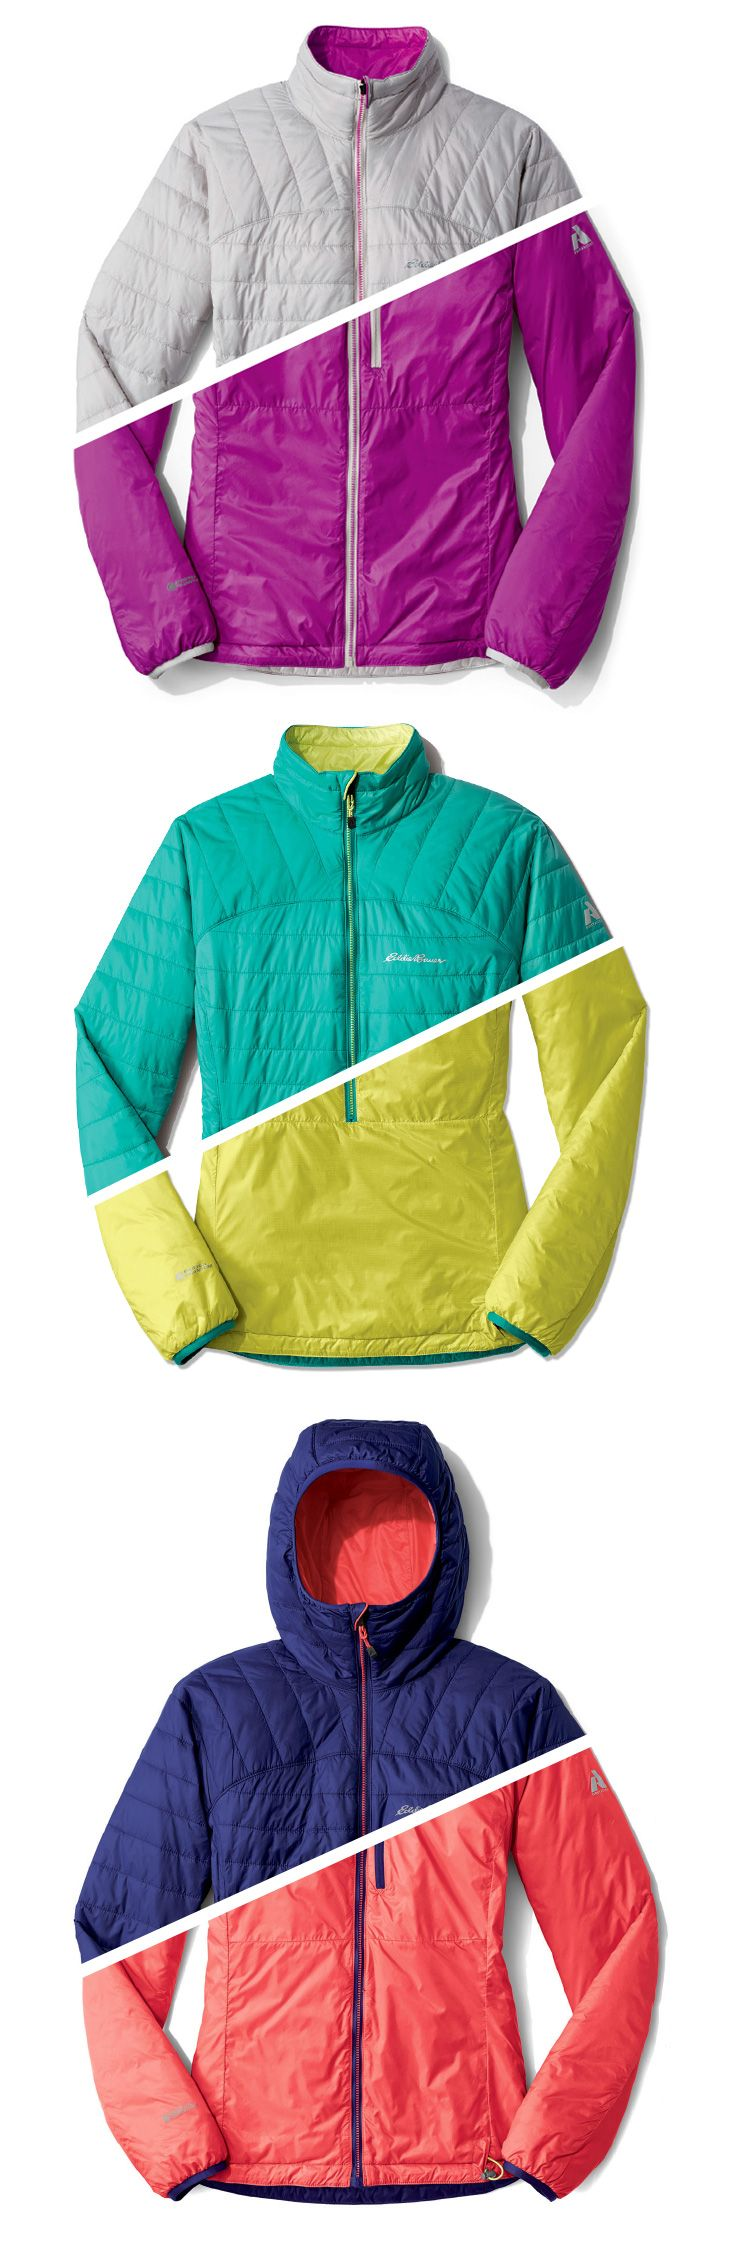 Great layer for any outdoor adventure, the reversible Women's Ignitelite Jacket, with or without a hood.